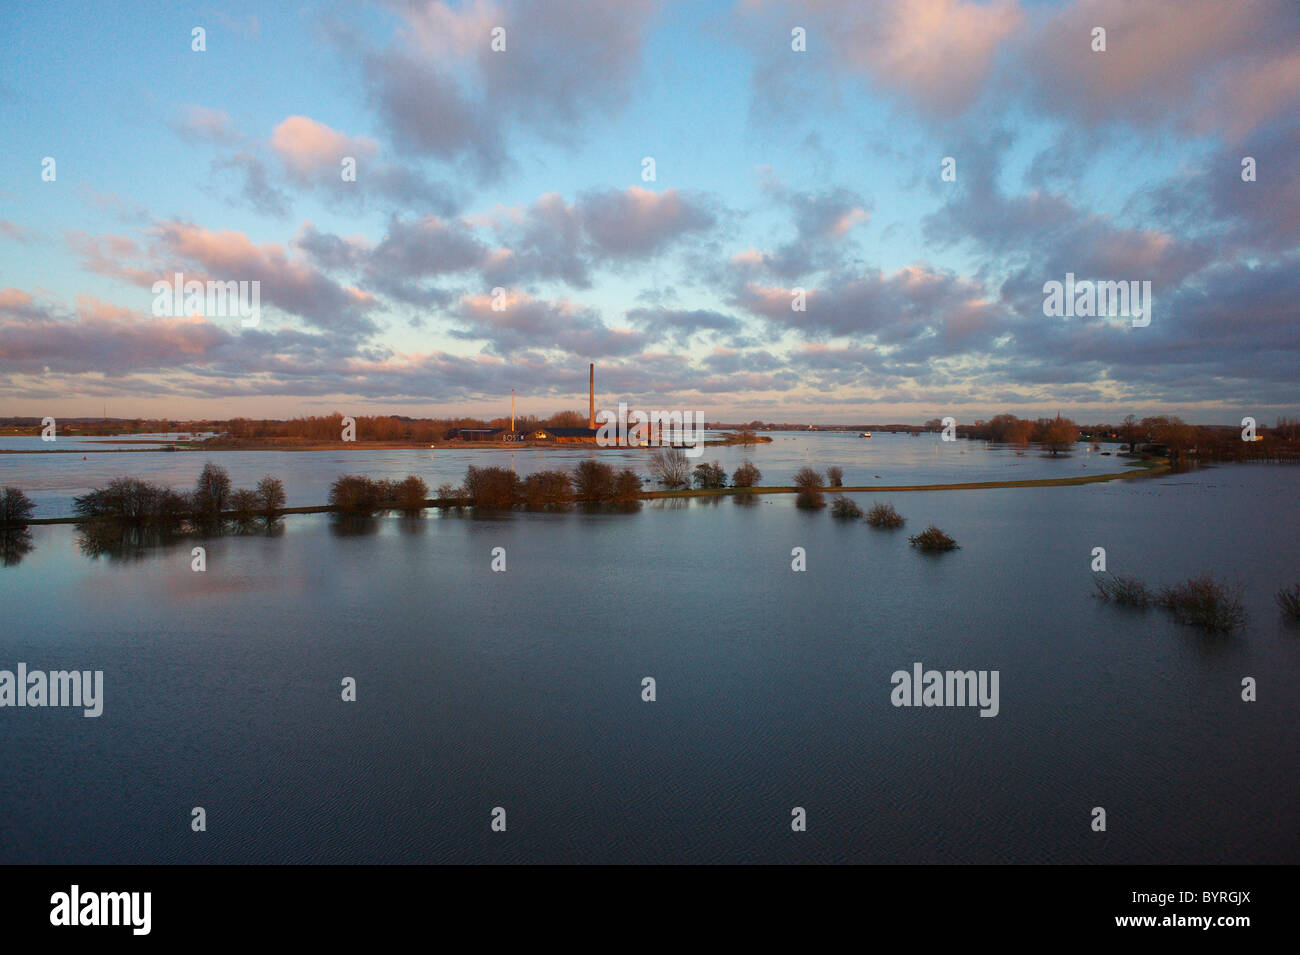 The river Lek in flood near Beusichem, The Netherlands - Stock Image